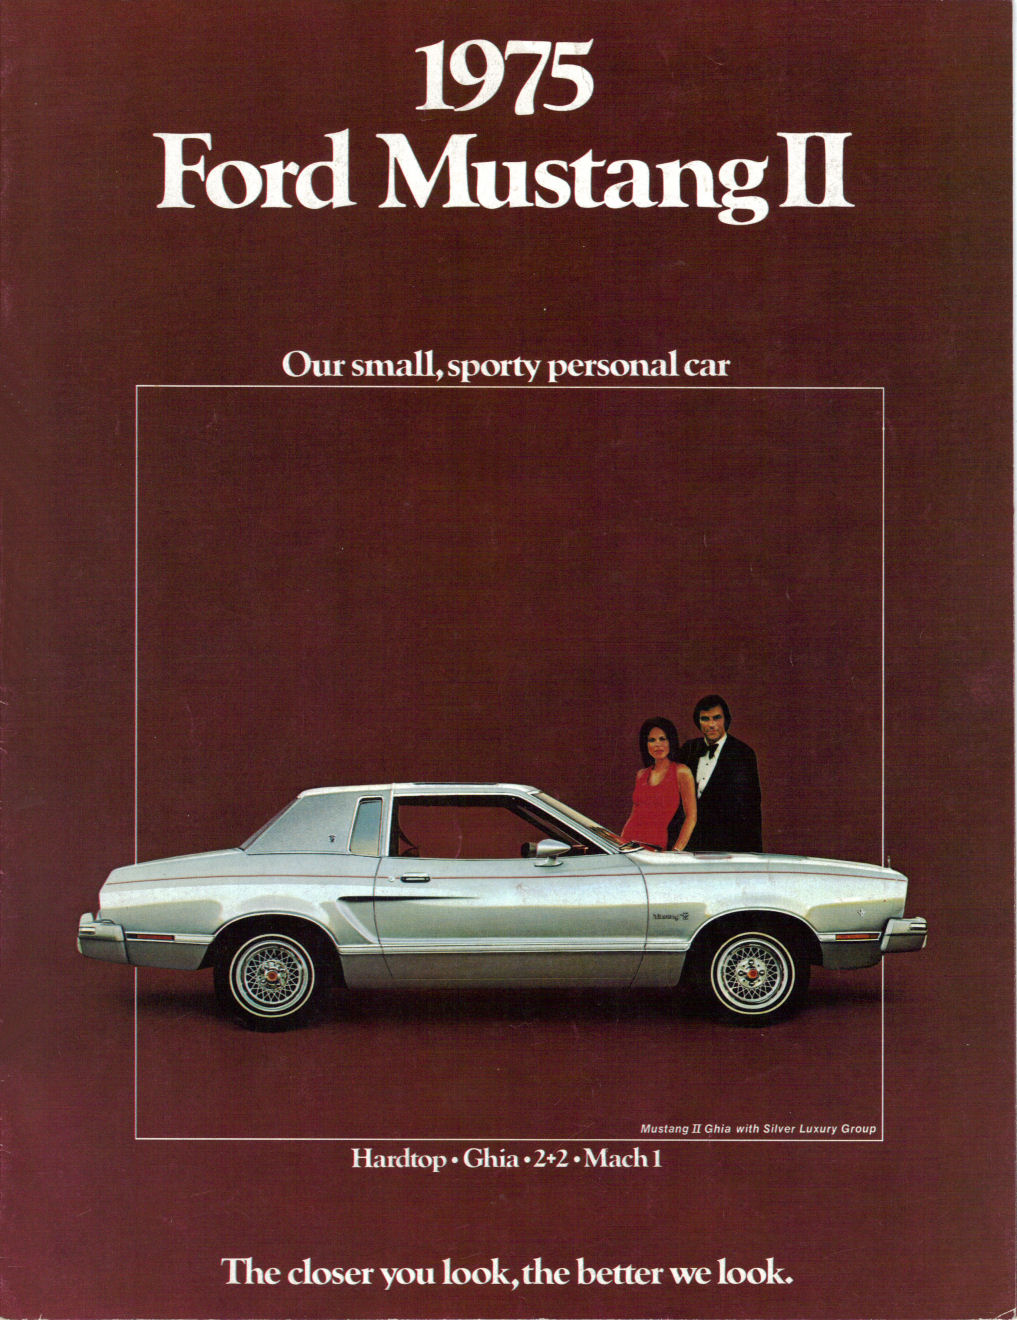 1975 Ford Mustang Ad 01